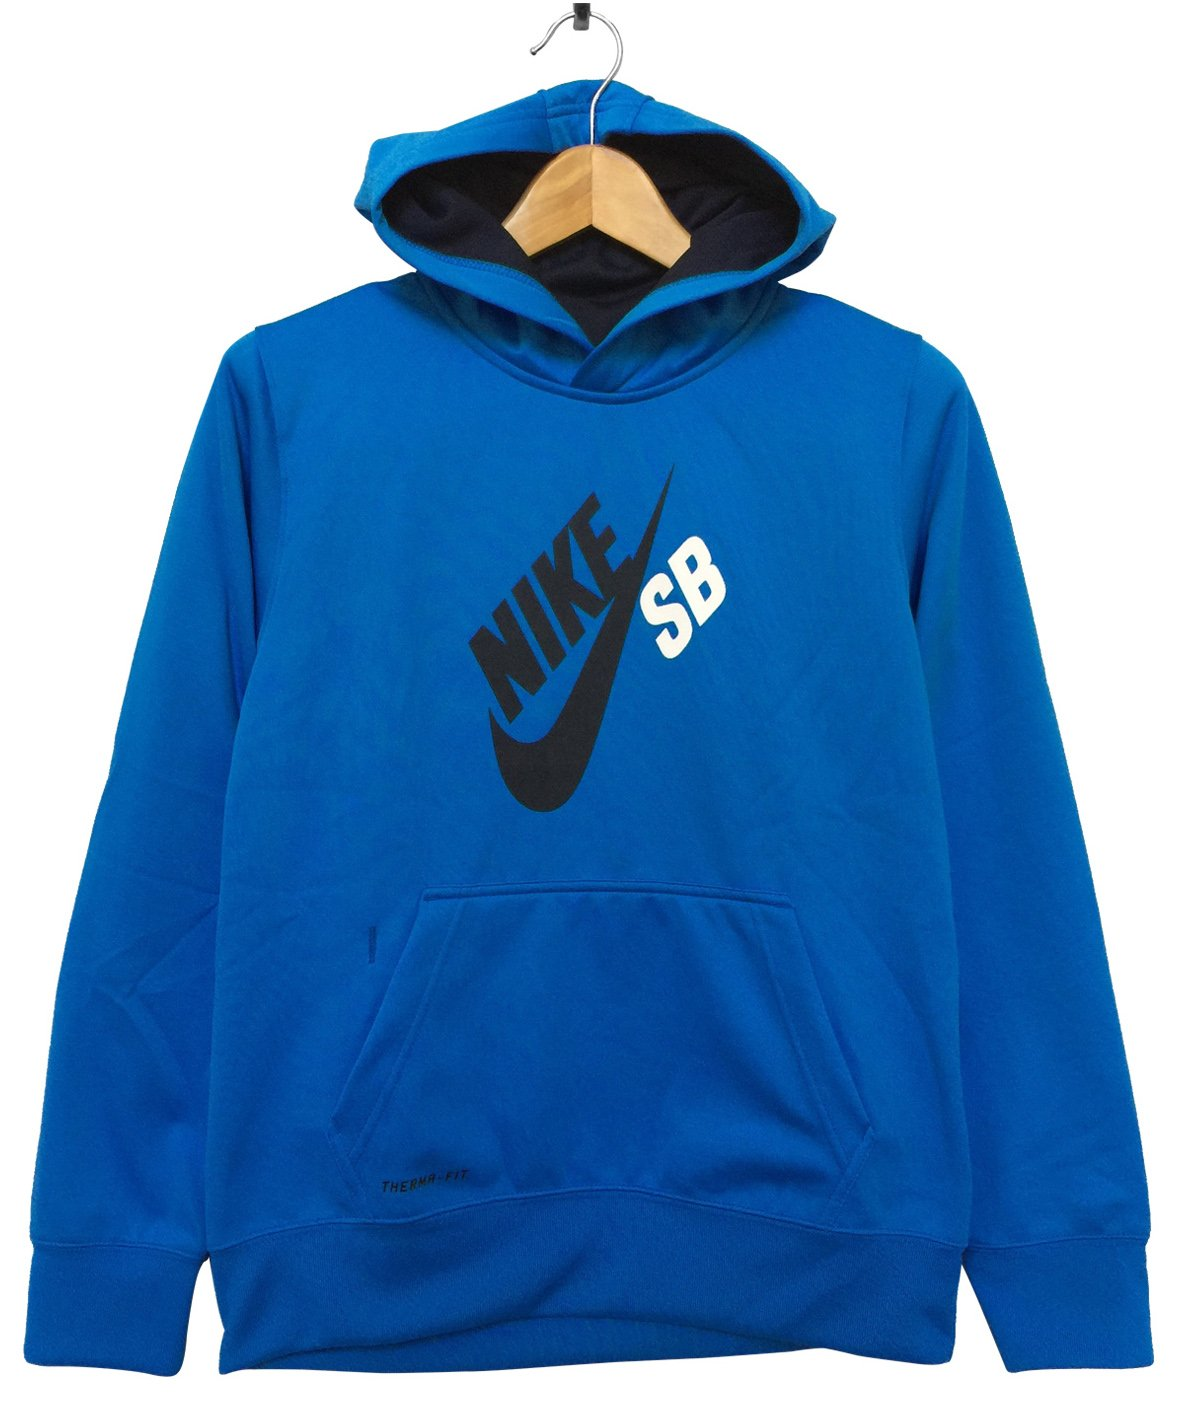 a130ebff9202 Galleon - Nike SB Youth Boys Therma-fit Pullover Fleece Sweatshirt Hoodie